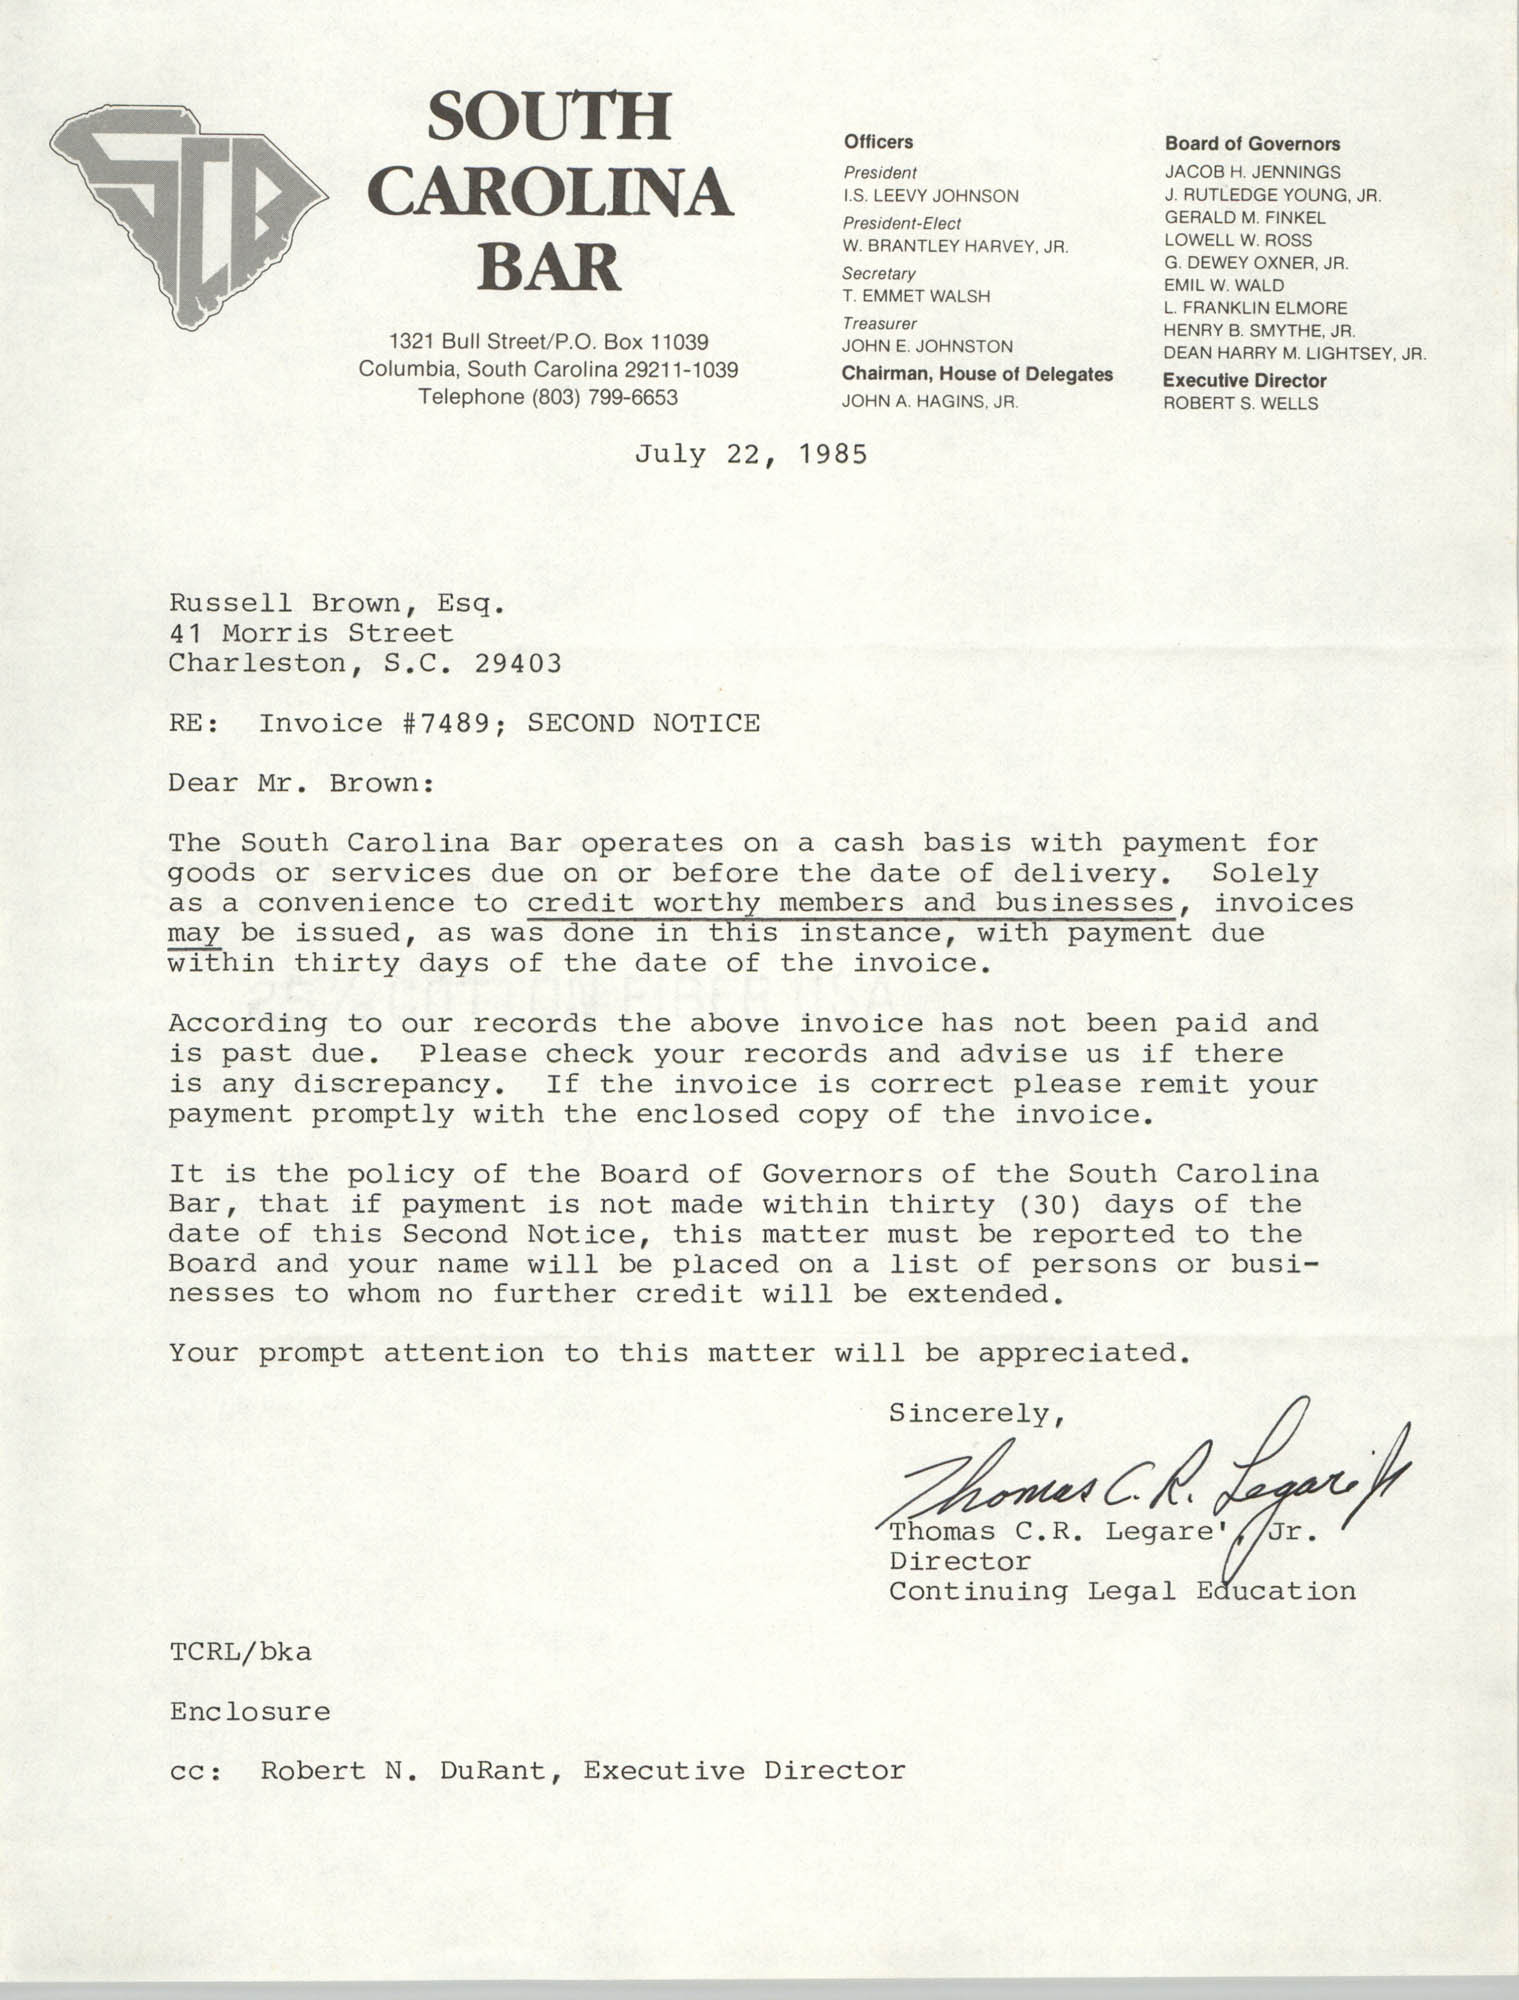 Letter from Thomas C.R. Legare Jr. to Russell Brown, July 22, 1985